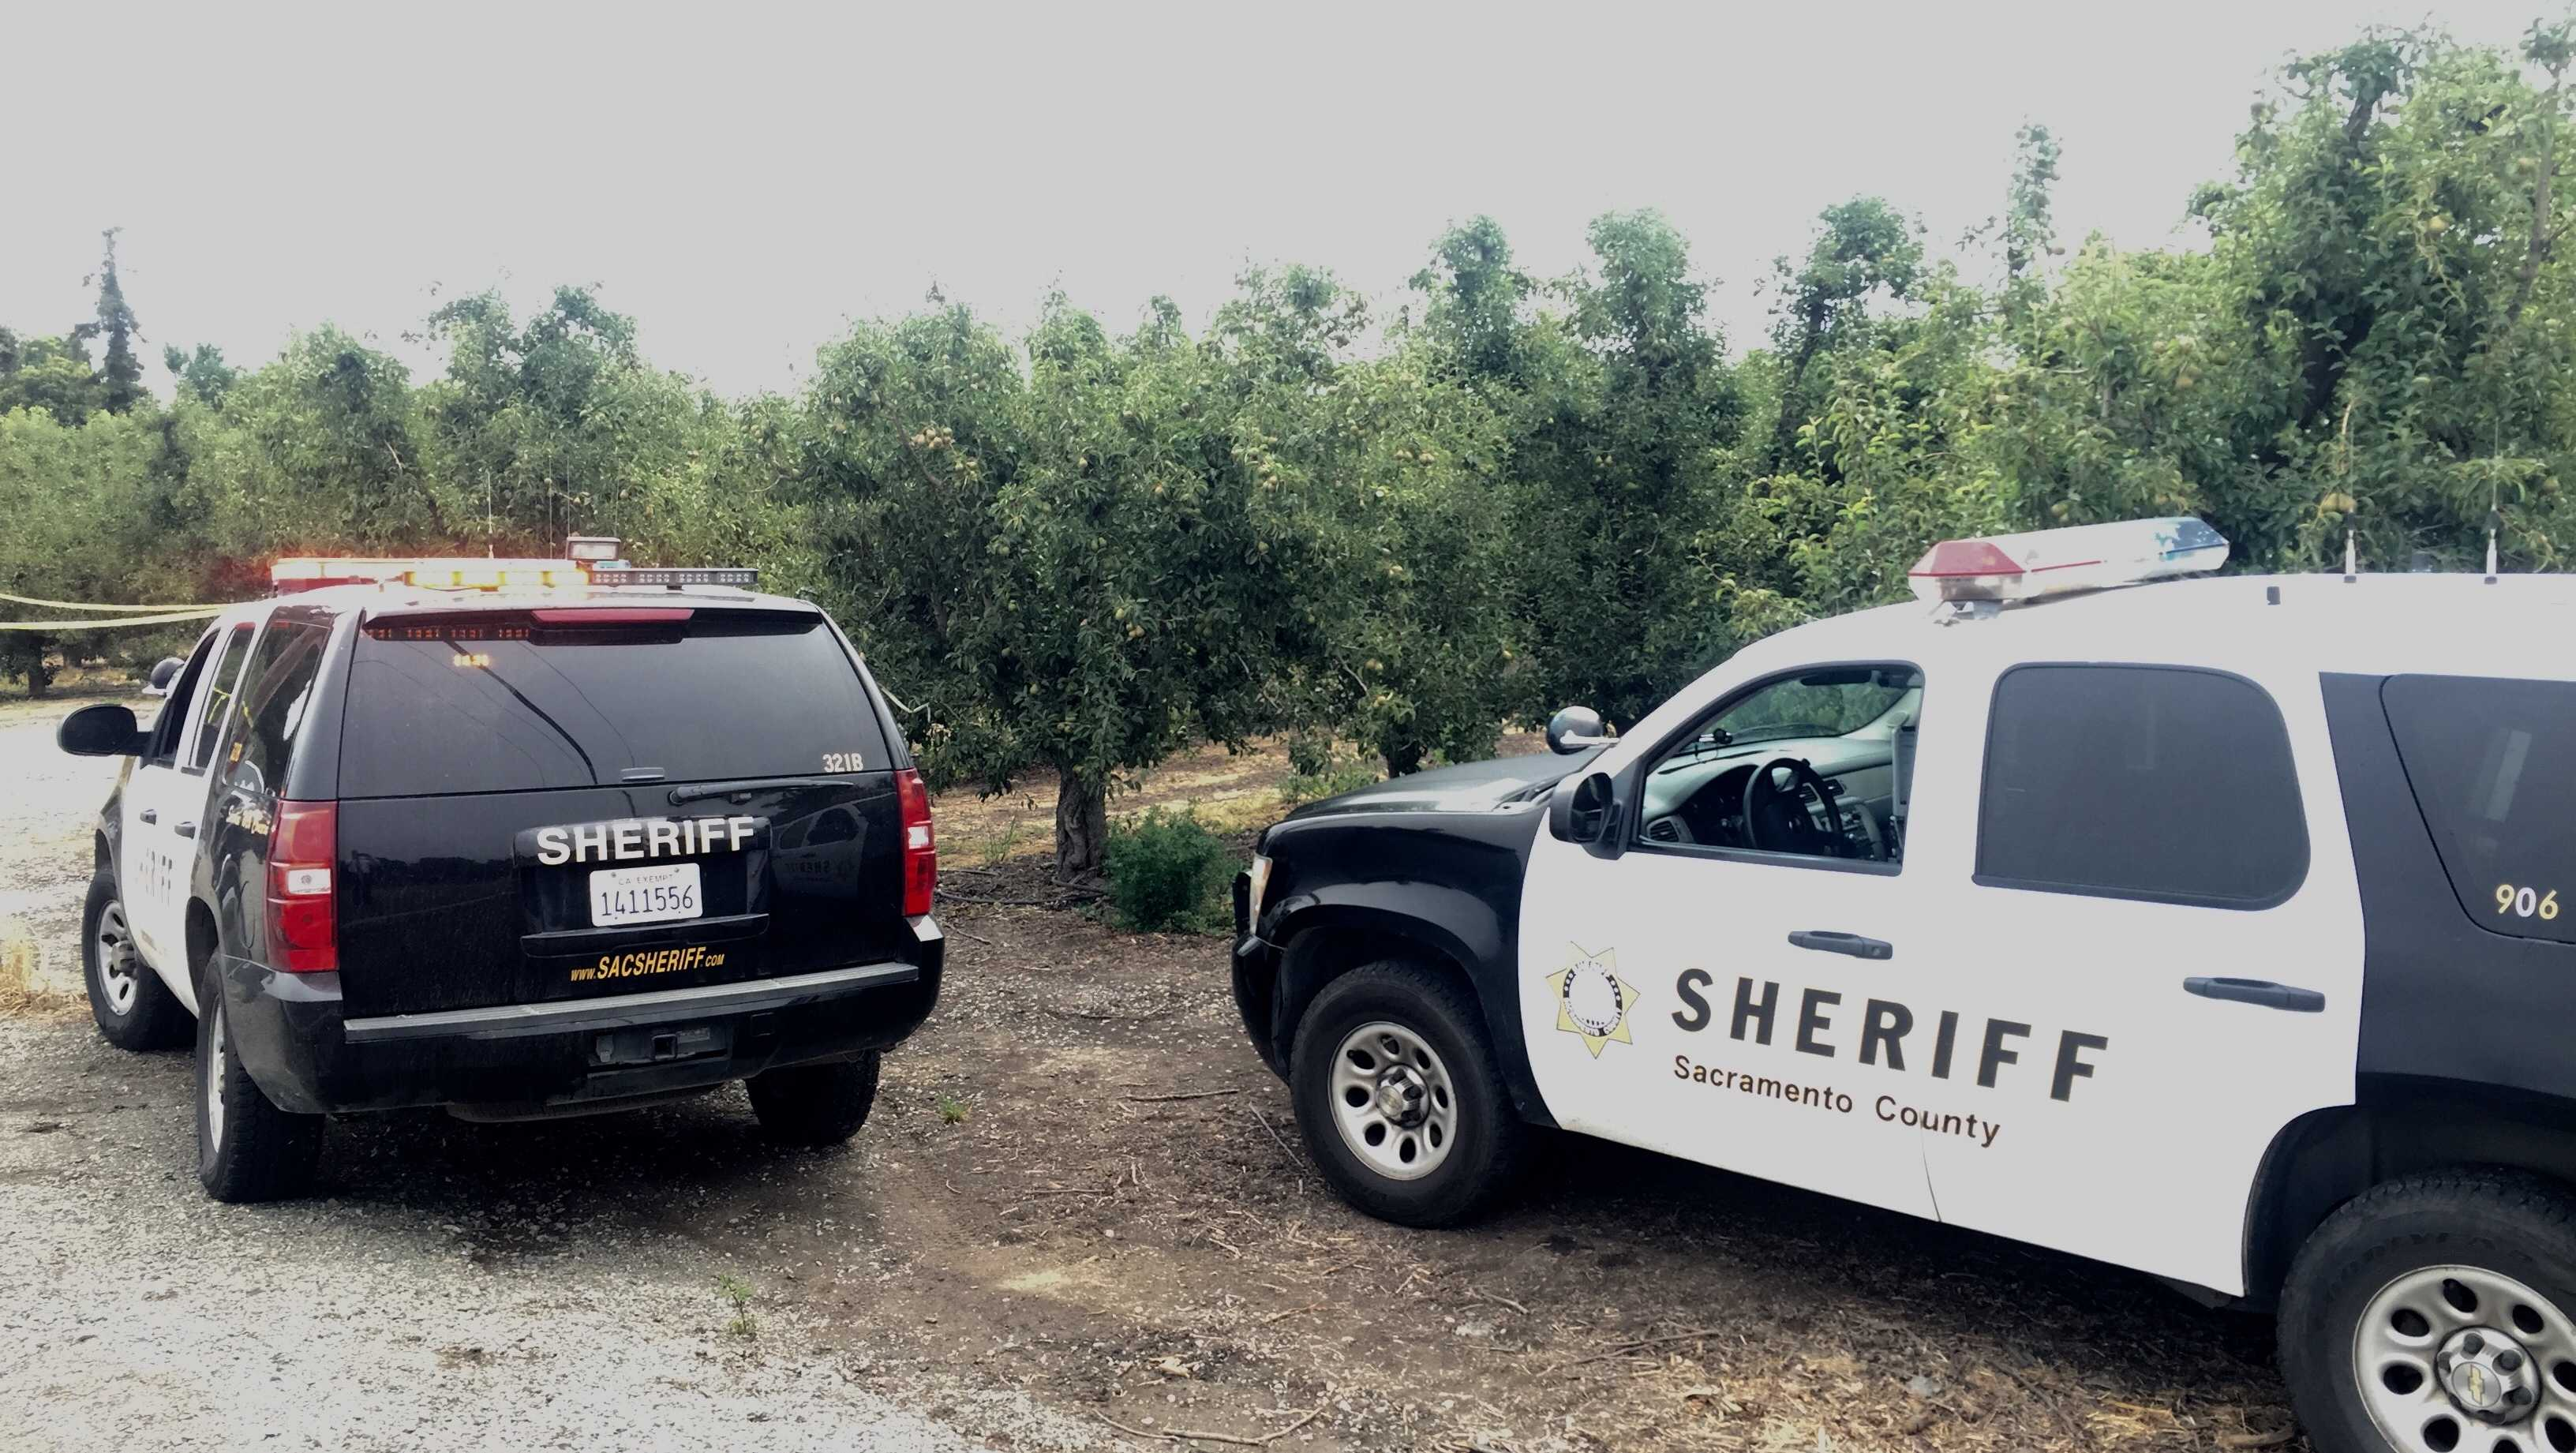 Deputies investigate a deadly shooting after a victim was found Thursday, June 8, 2017, in a Sacramento County orchard, the Sacramento County Sheriff's Department said.